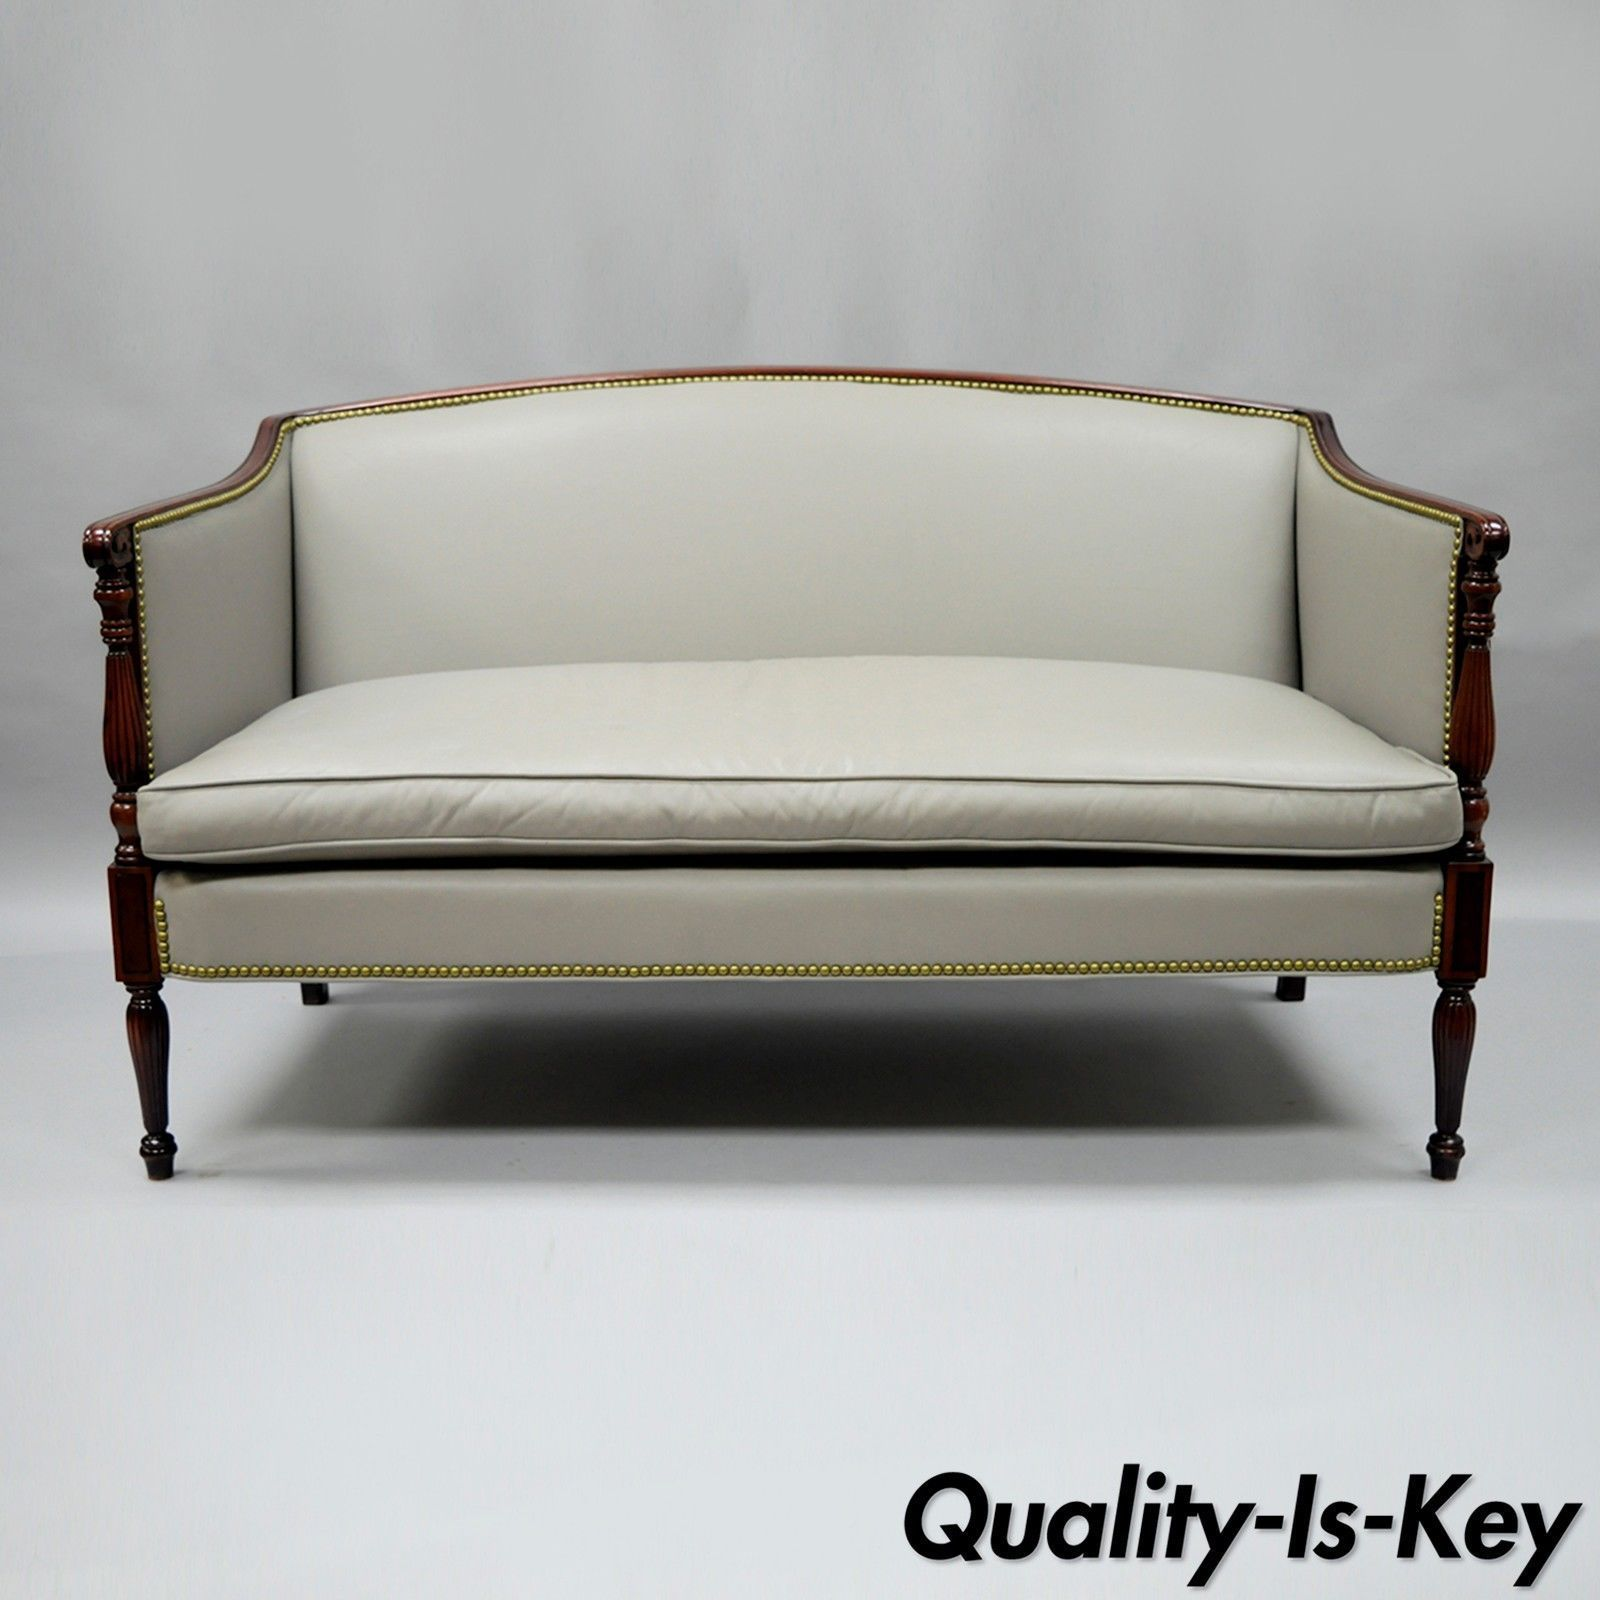 plum home hayneedle josephine collage pin furniture bixby com loveseat chelsea brown from